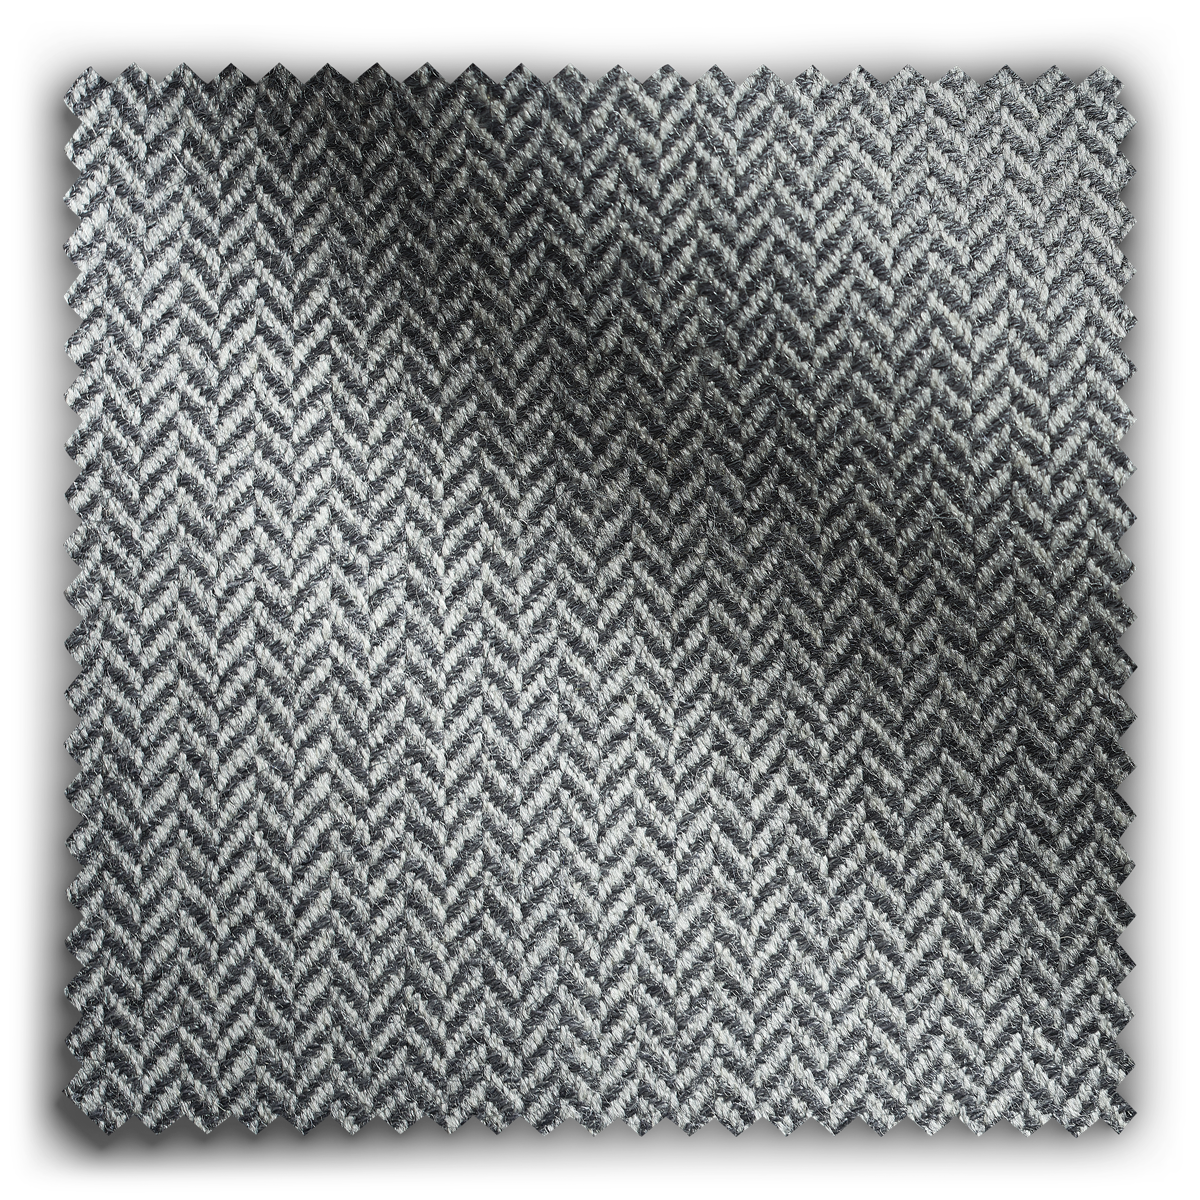 Image of City Herringbone Silver Grey  fabric